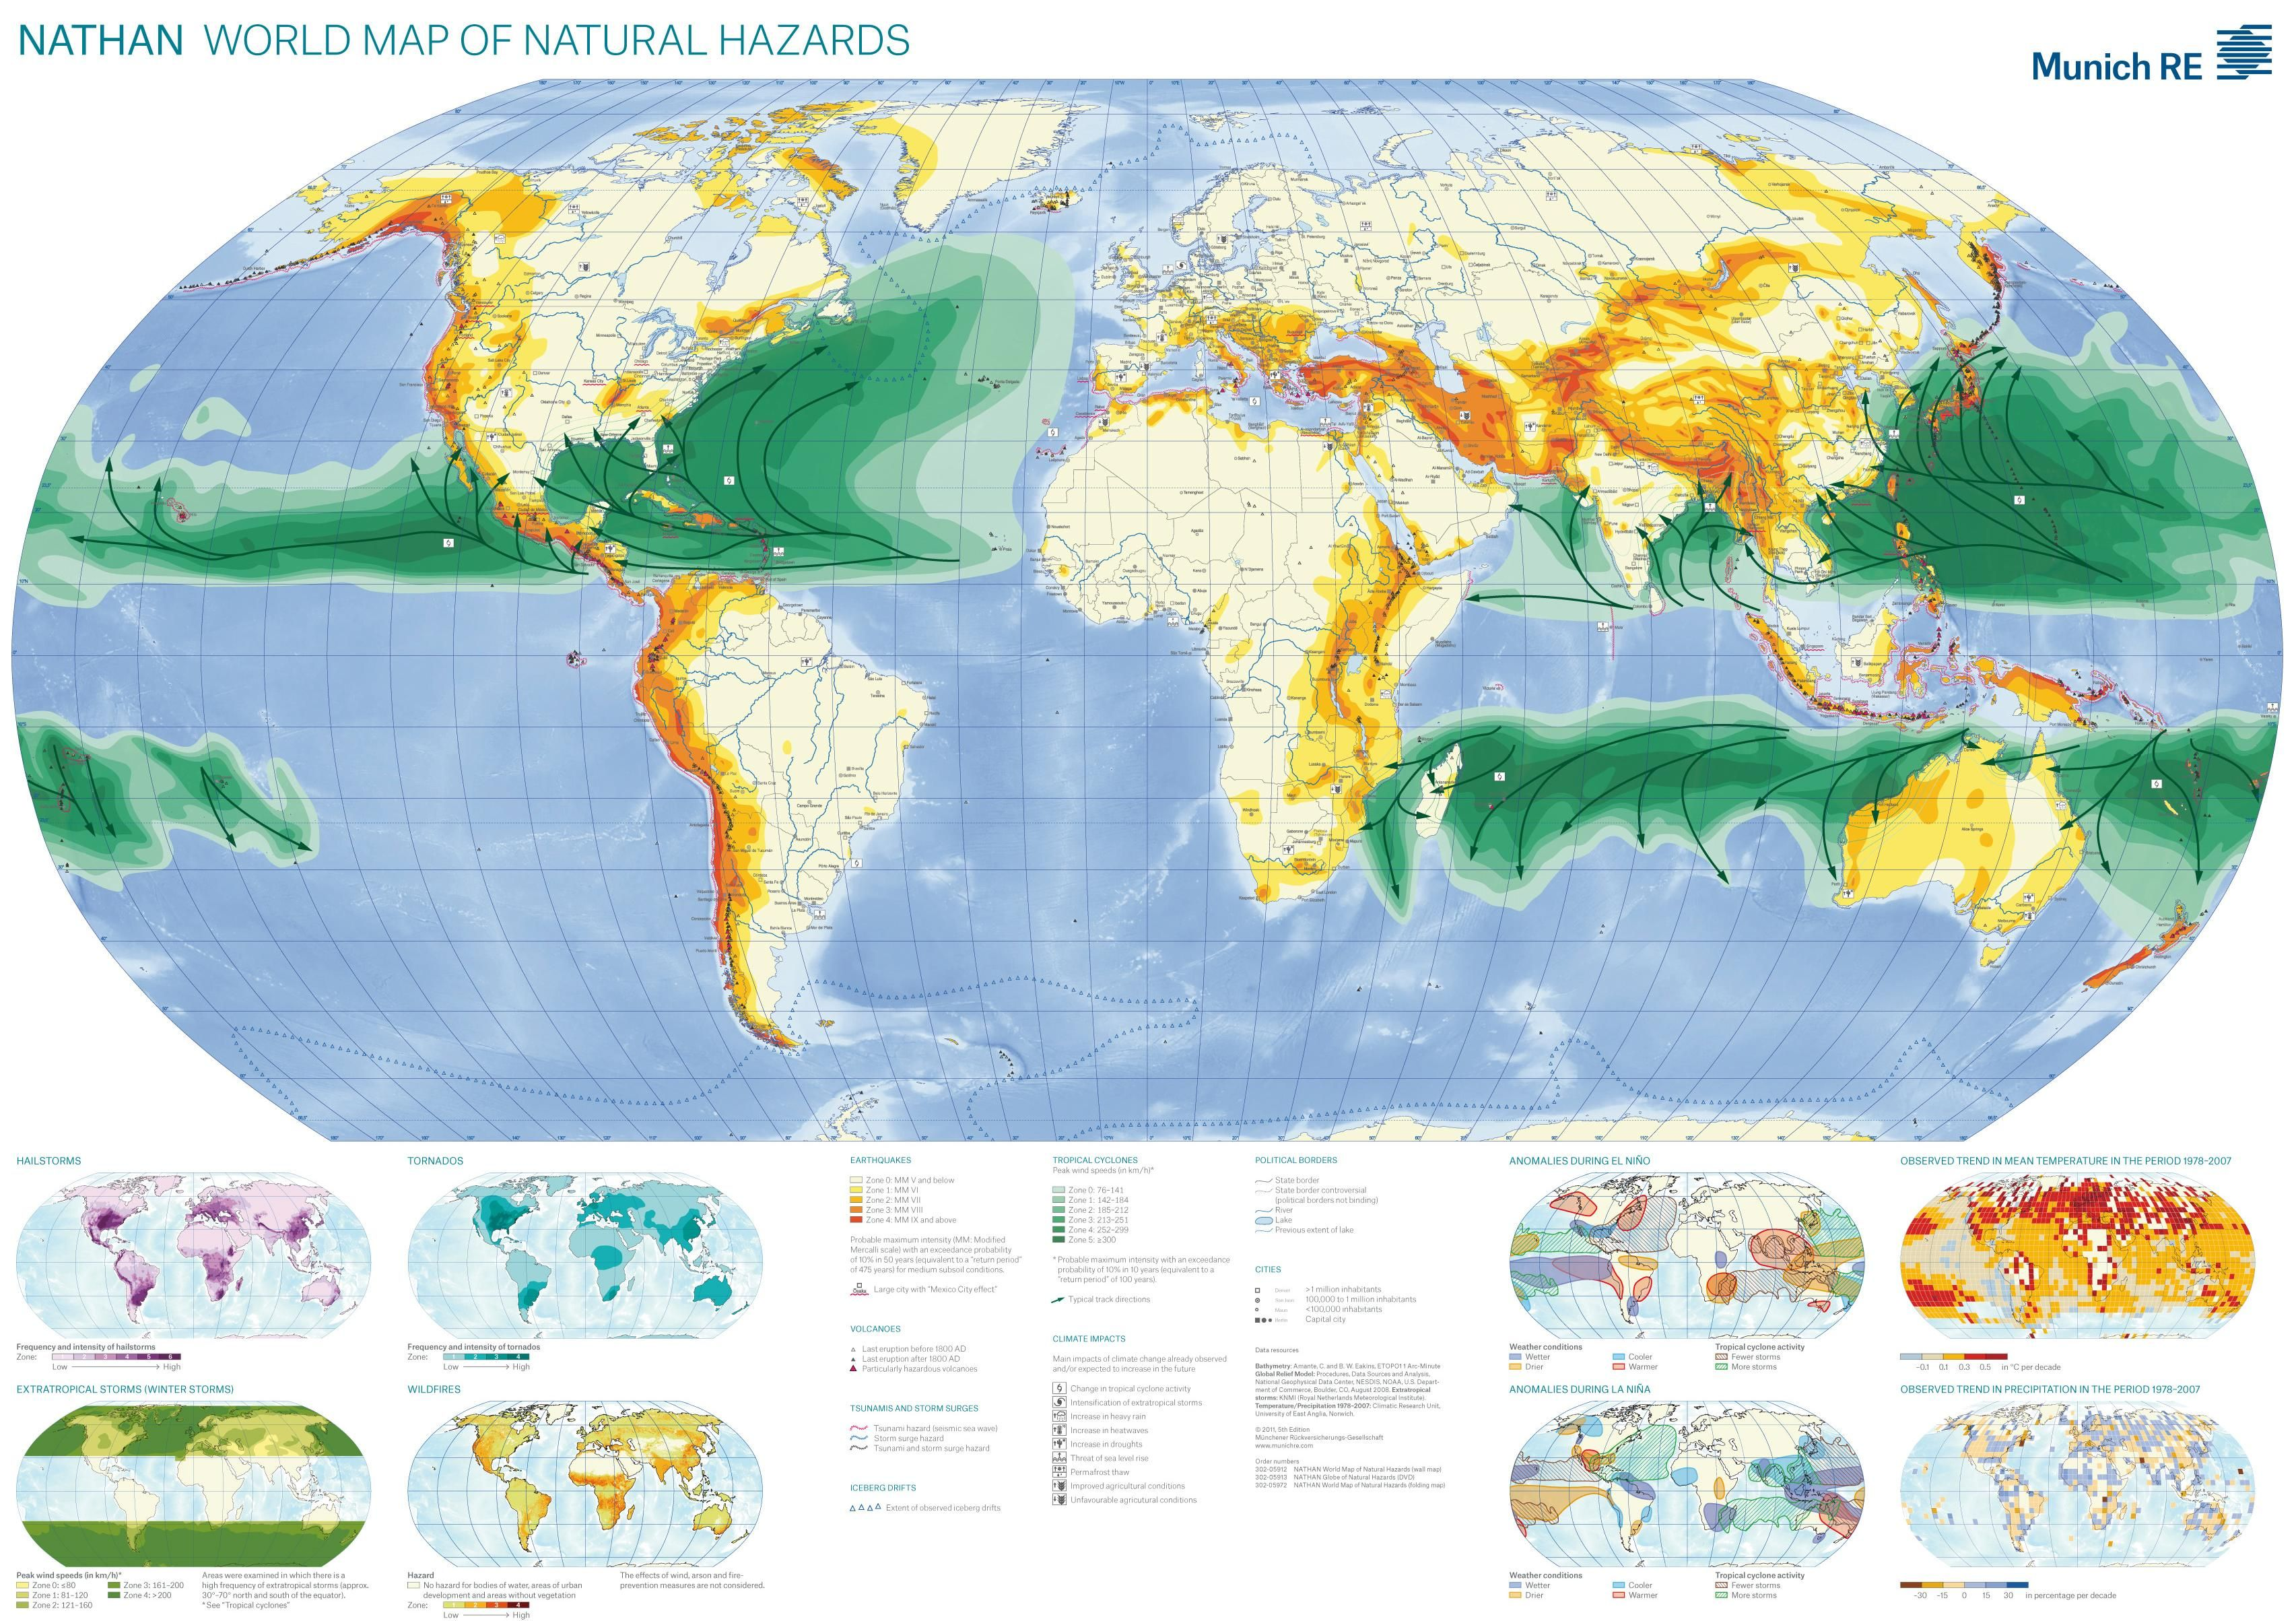 World Map Of Natural Hazards From The Munich Re Nathan Database